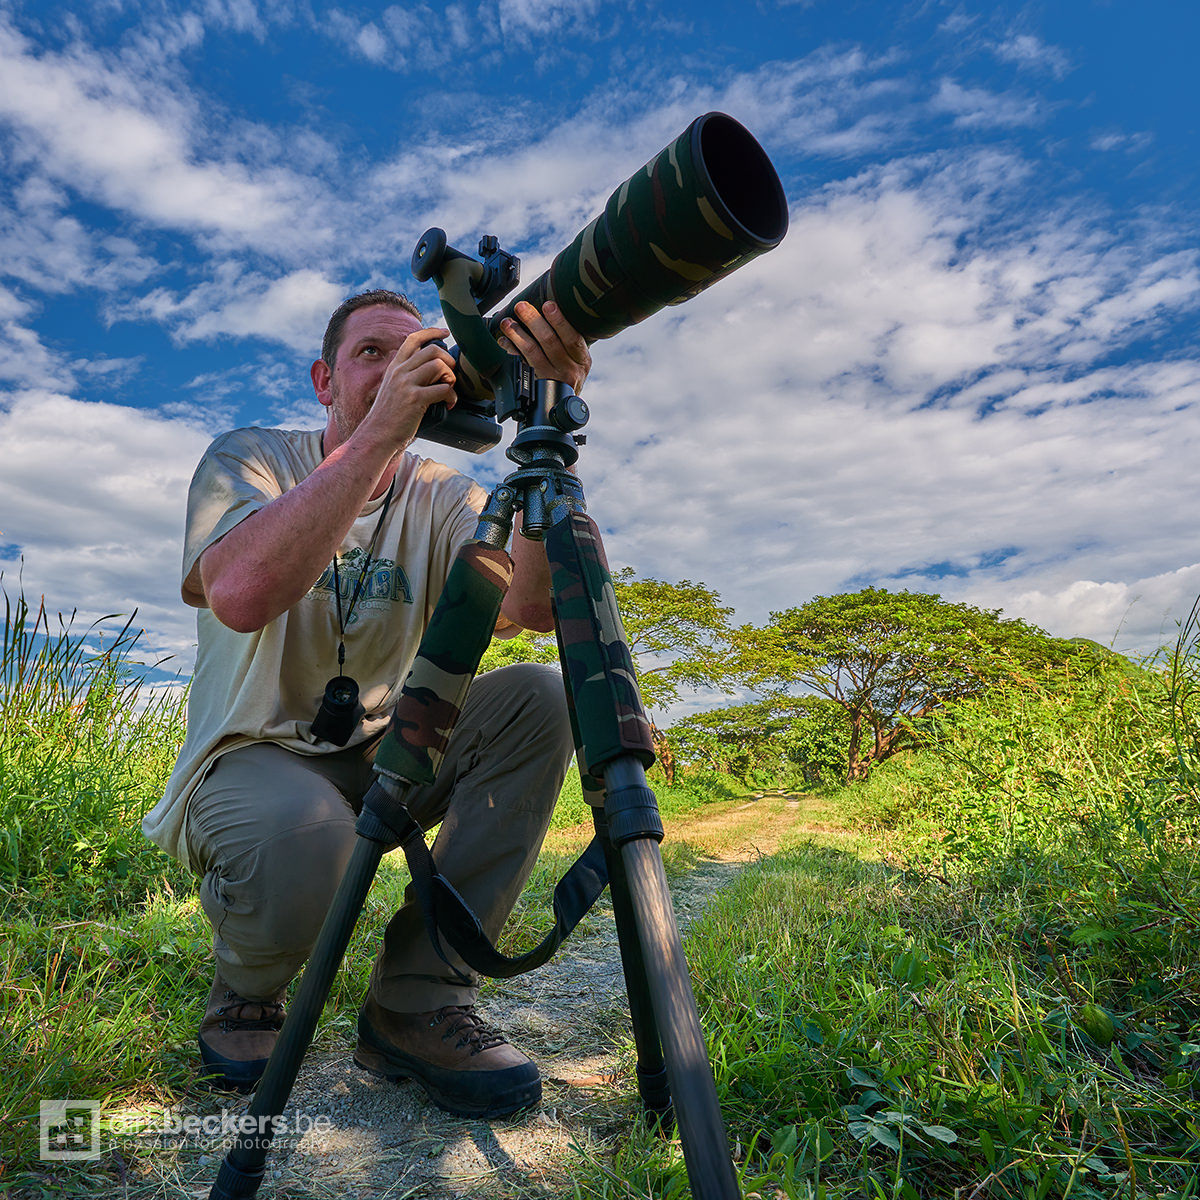 Ready to shoot wildlife at Palo Verde National Park in Guanacaste, Costa Rica.